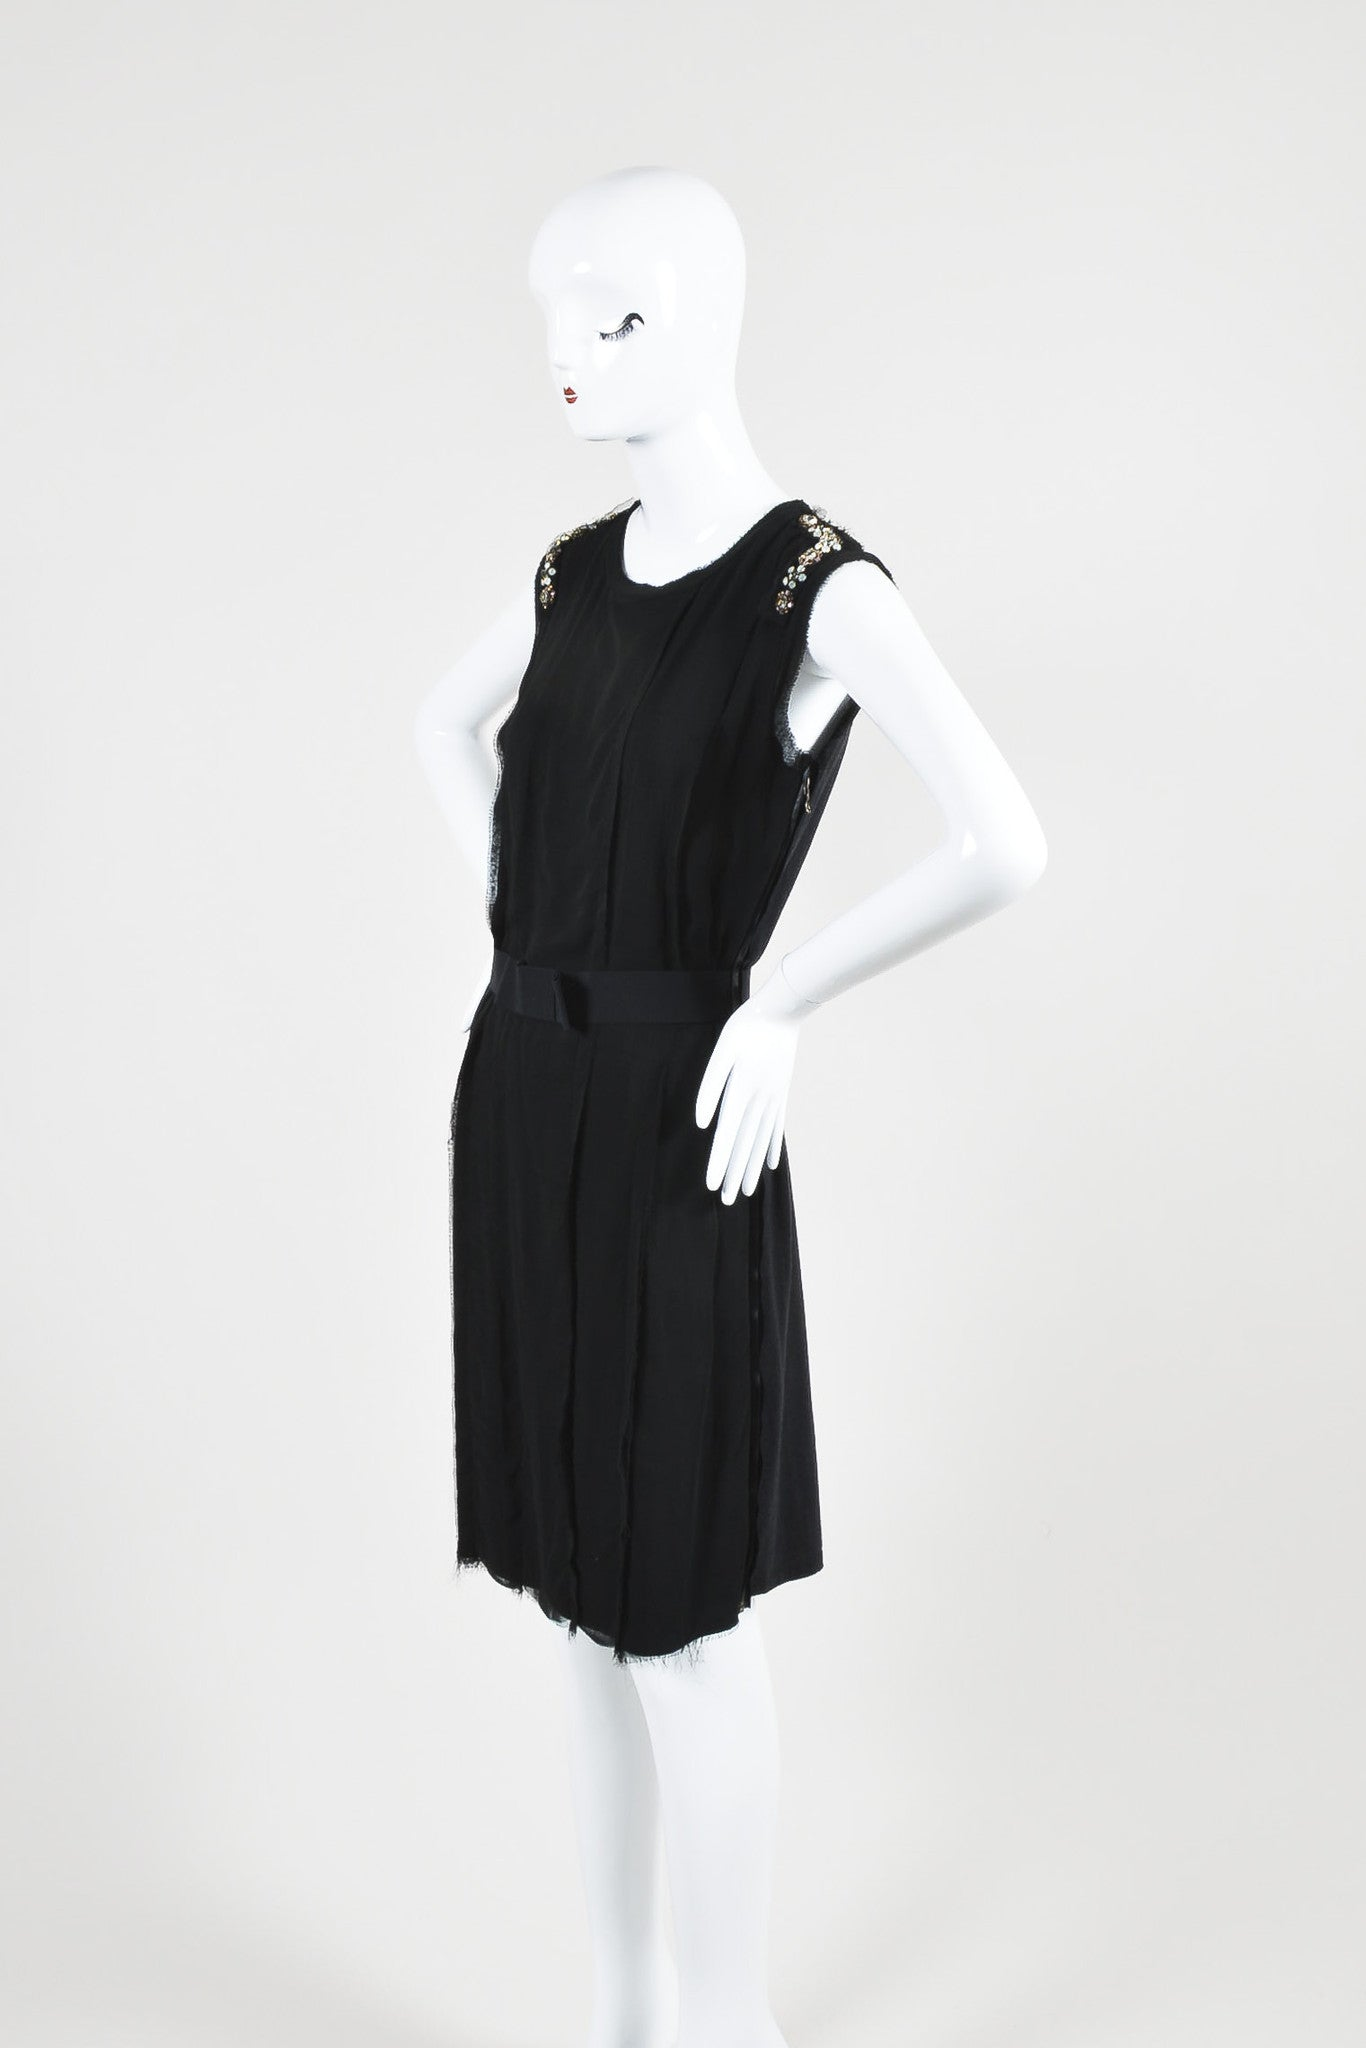 Lanvin Black Cotton Knit Chiffon Crystal Embellished Belted Sleeveless Dress Sideview